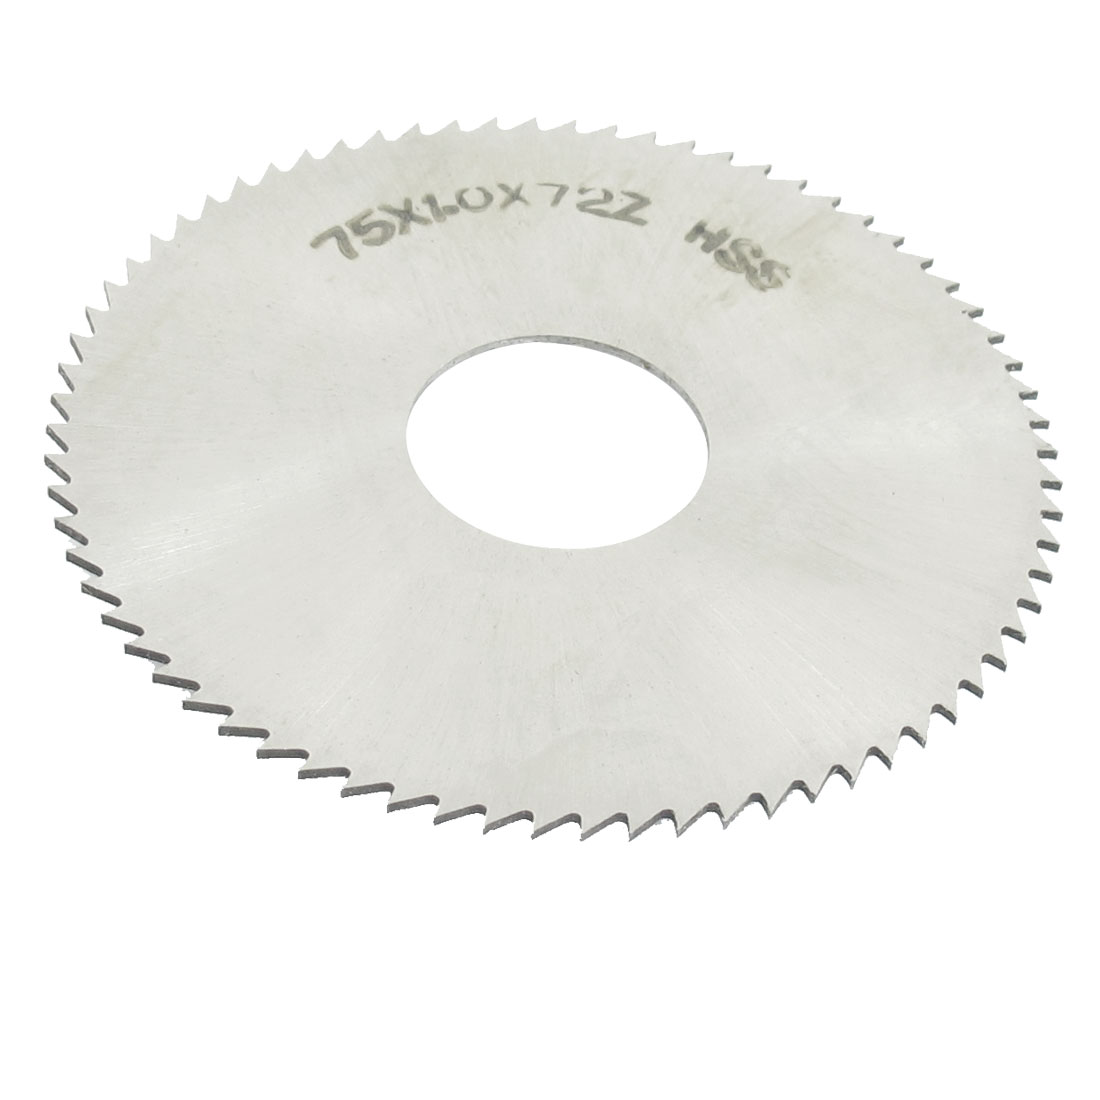 HSS 75mm Dia 1mm Thickness 72 Teeth Circular Milling Cutter Saw